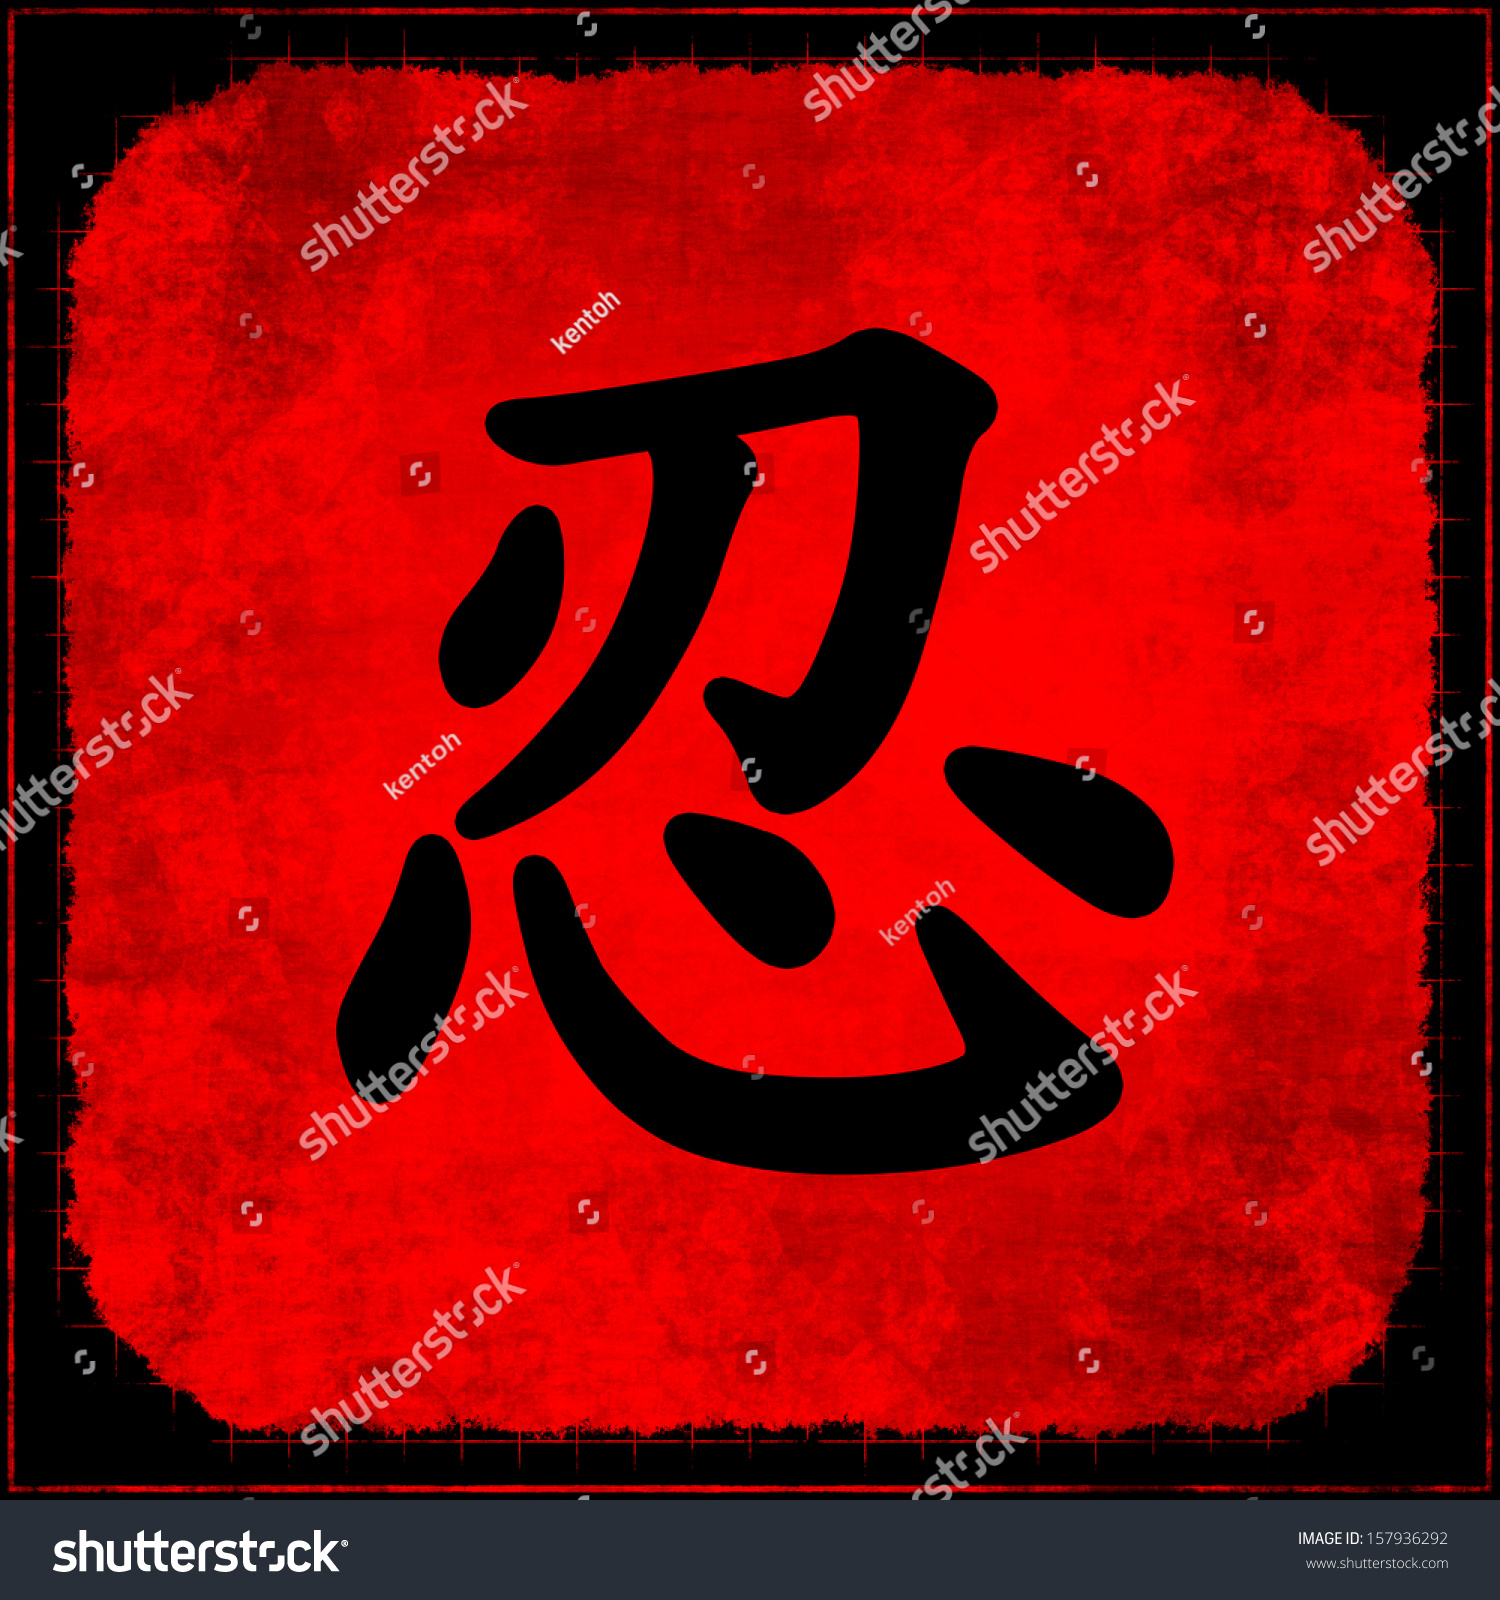 Patience Traditional Chinese Calligraphy Art Stock Illustration